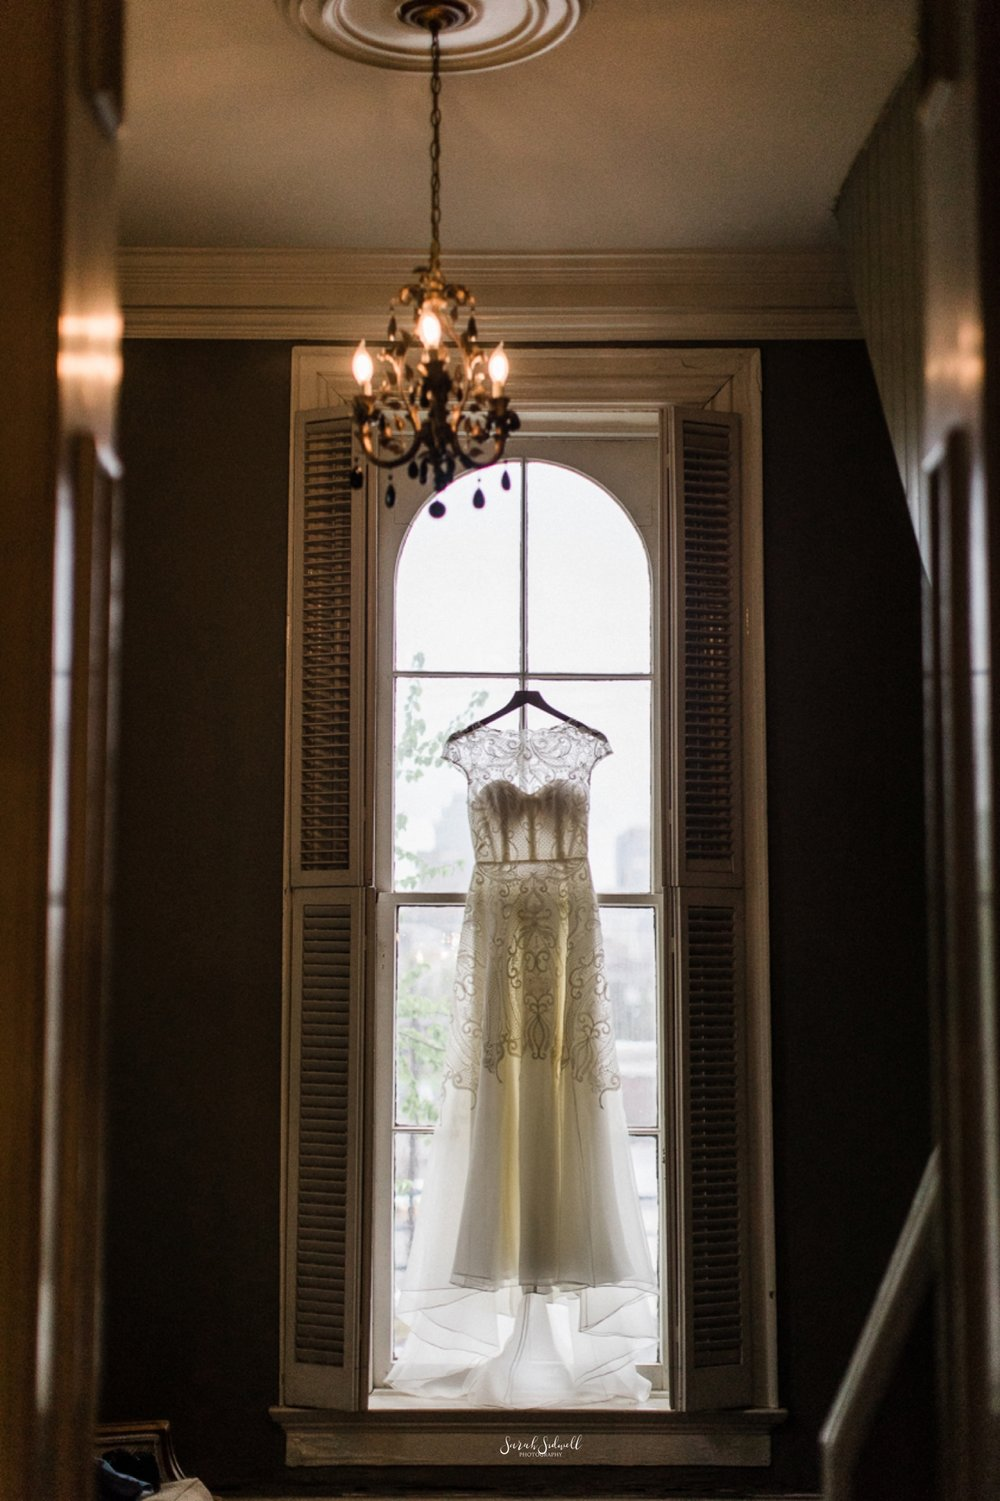 A wedding dress hangs in a window at the East Ivy Mansion.